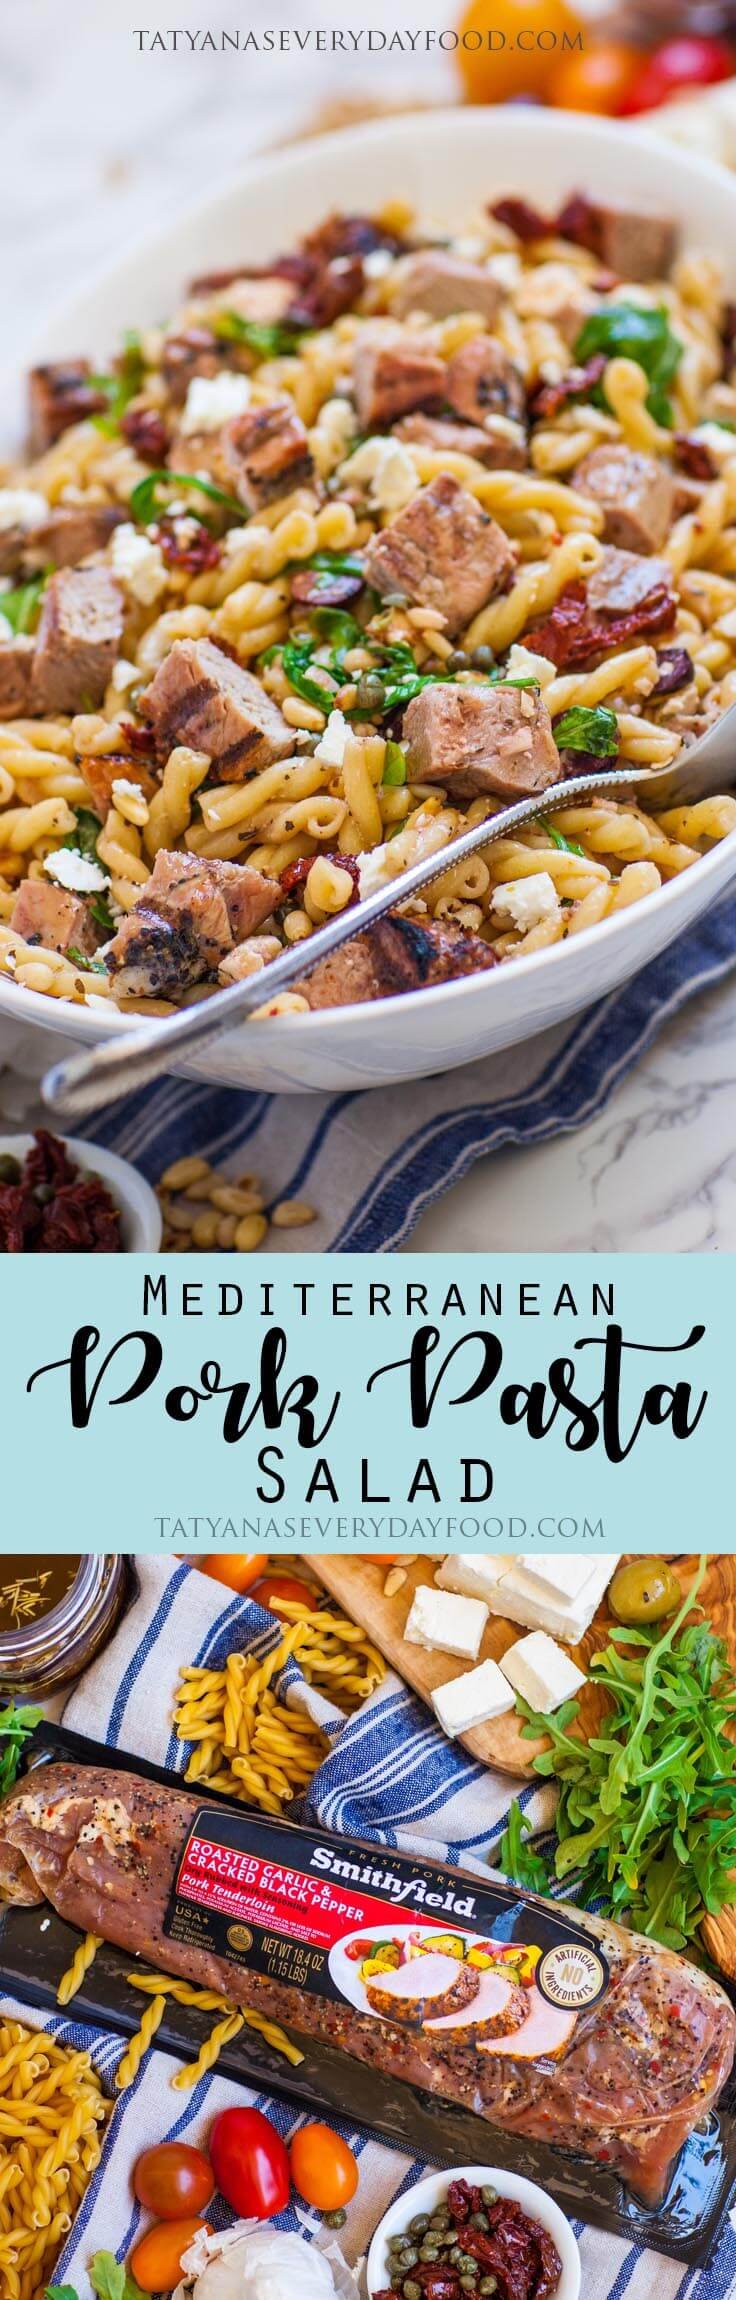 Mediterranean Pasta Salad with grilled pork